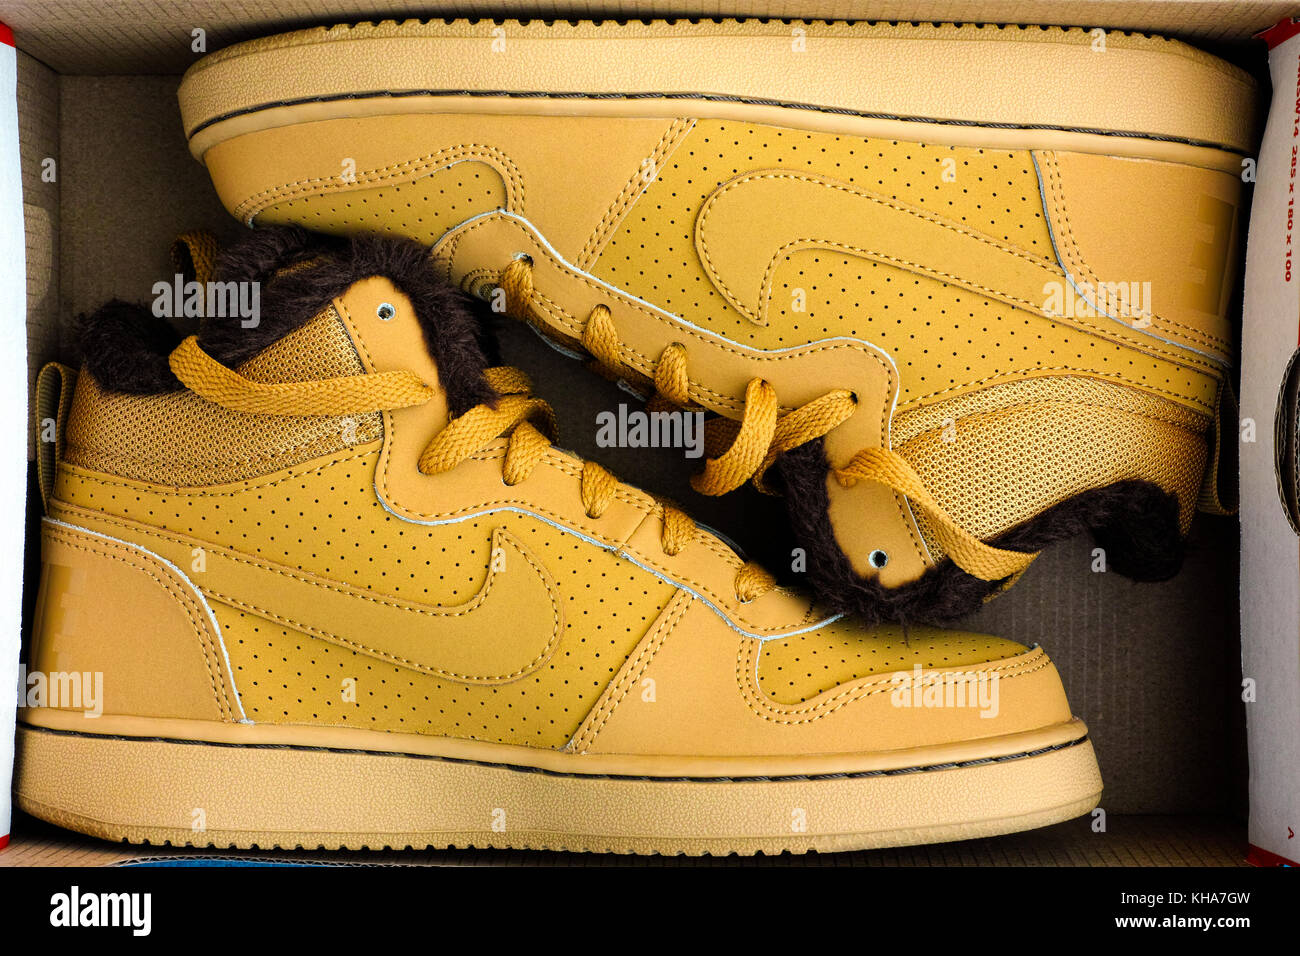 95481ebb5a39d Shoe Box And Shoes Stockfotos   Shoe Box And Shoes Bilder - Alamy